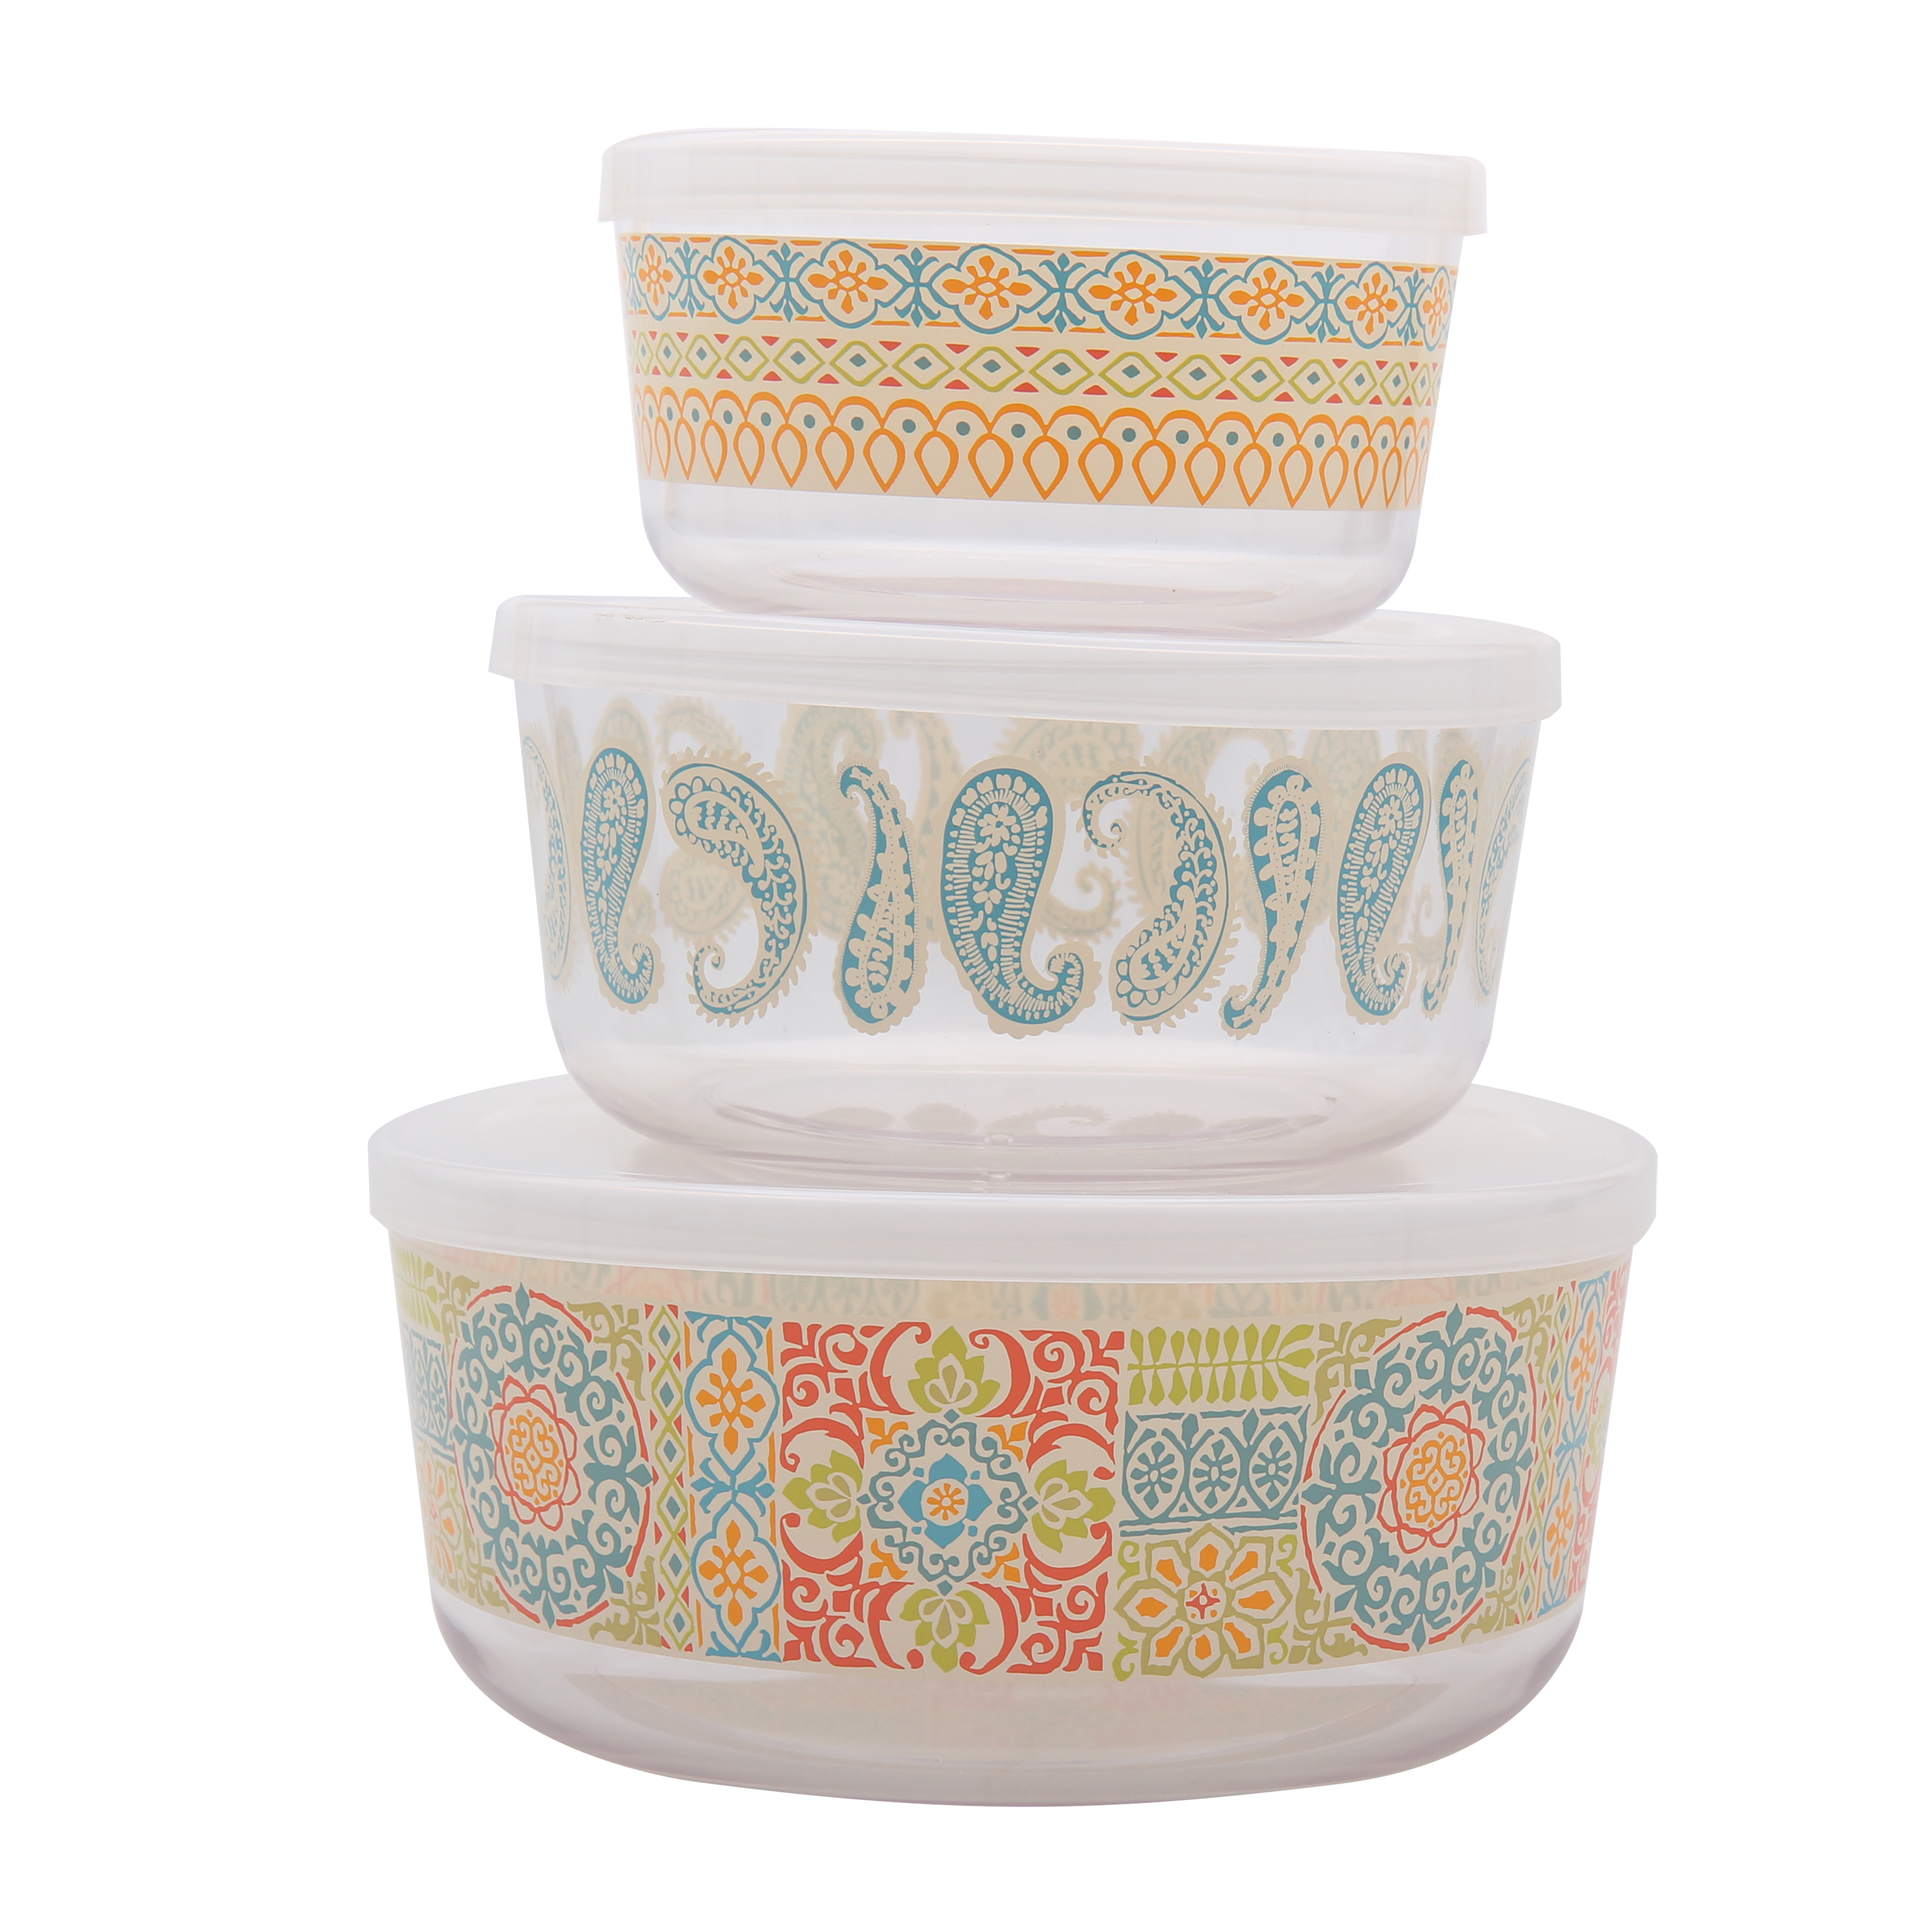 Mainstays Global 3 Piece Bowl Set